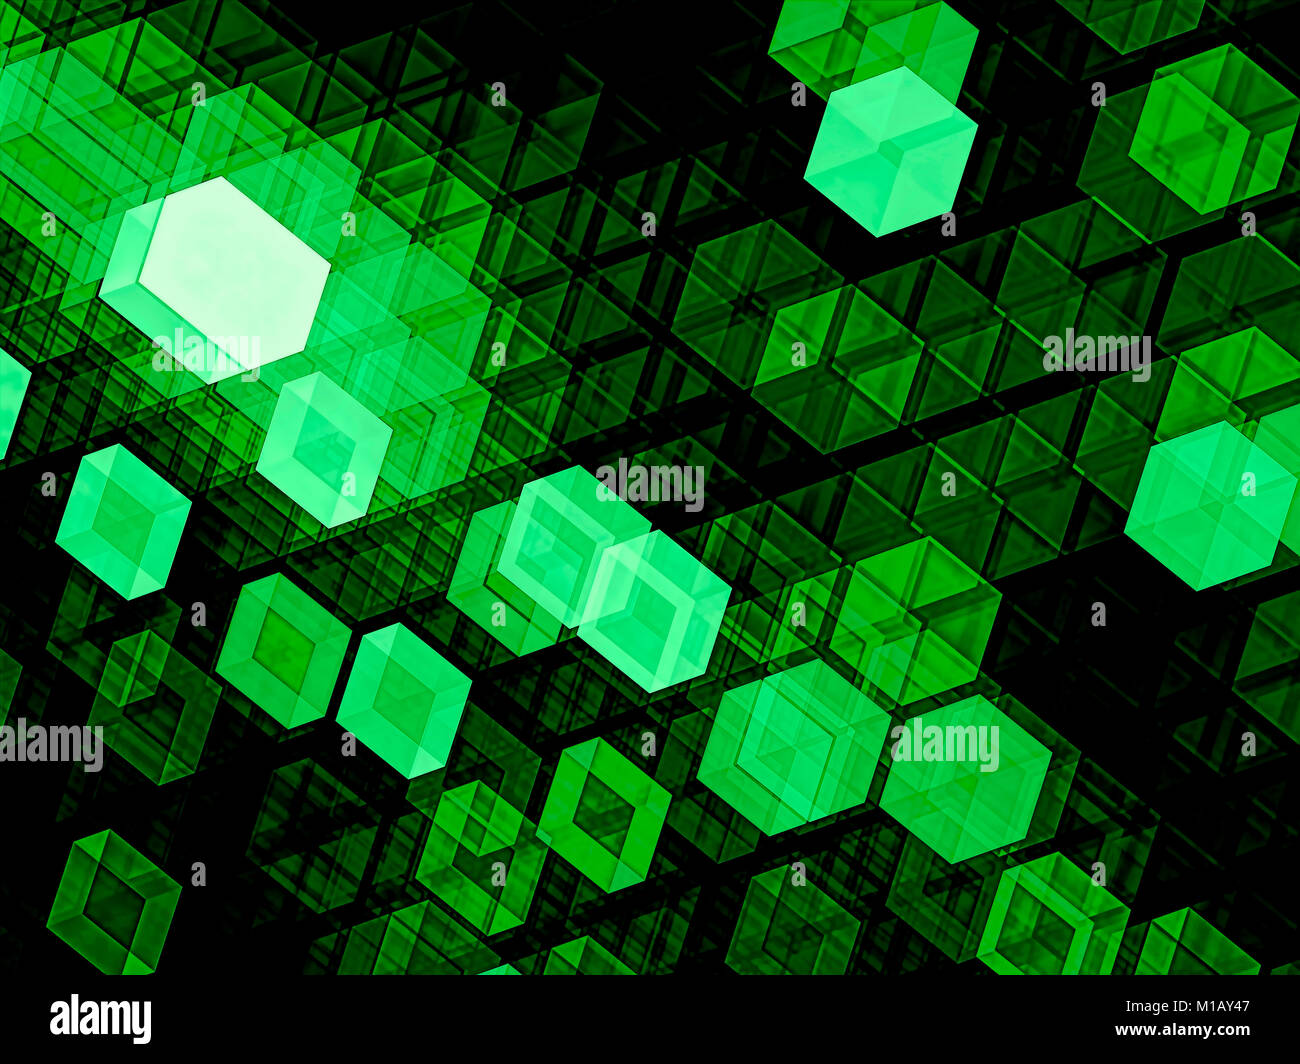 Tech chaos cubes - abstract digitally generated image - Stock Image